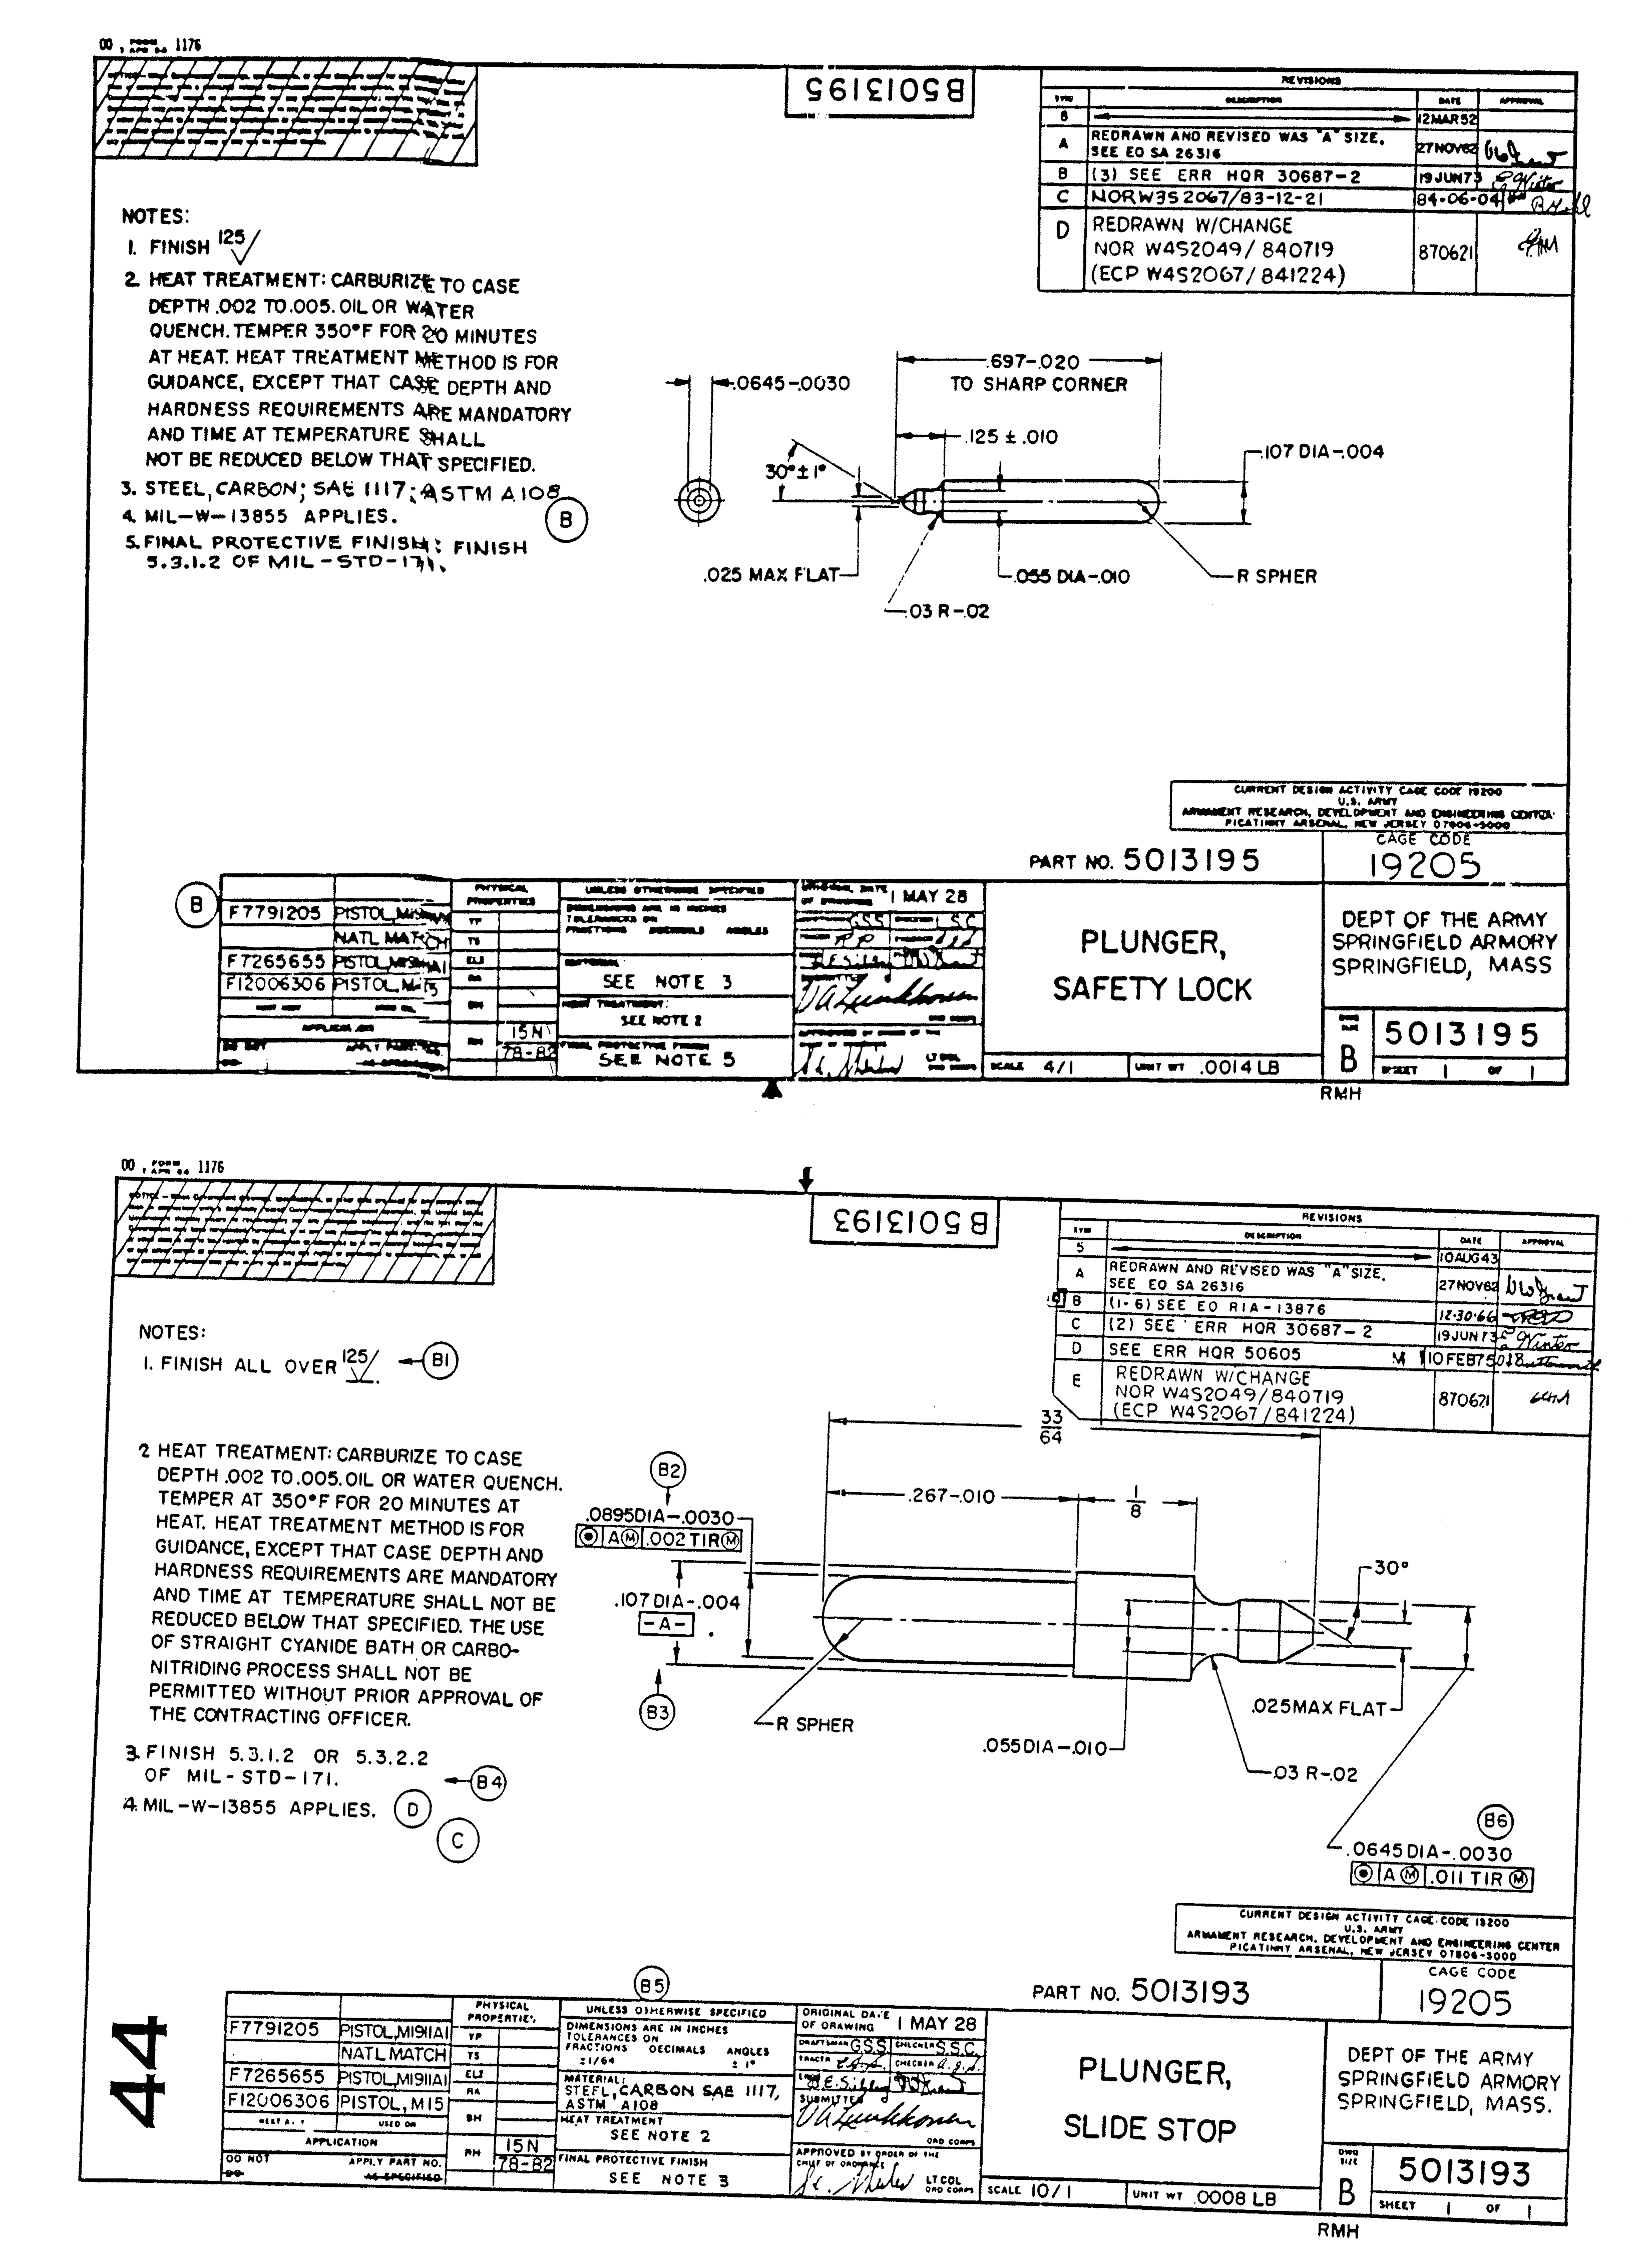 Show Posts Bob 1911 Safety Diagram Also With Exploded Parts And Slide Stop Plunger